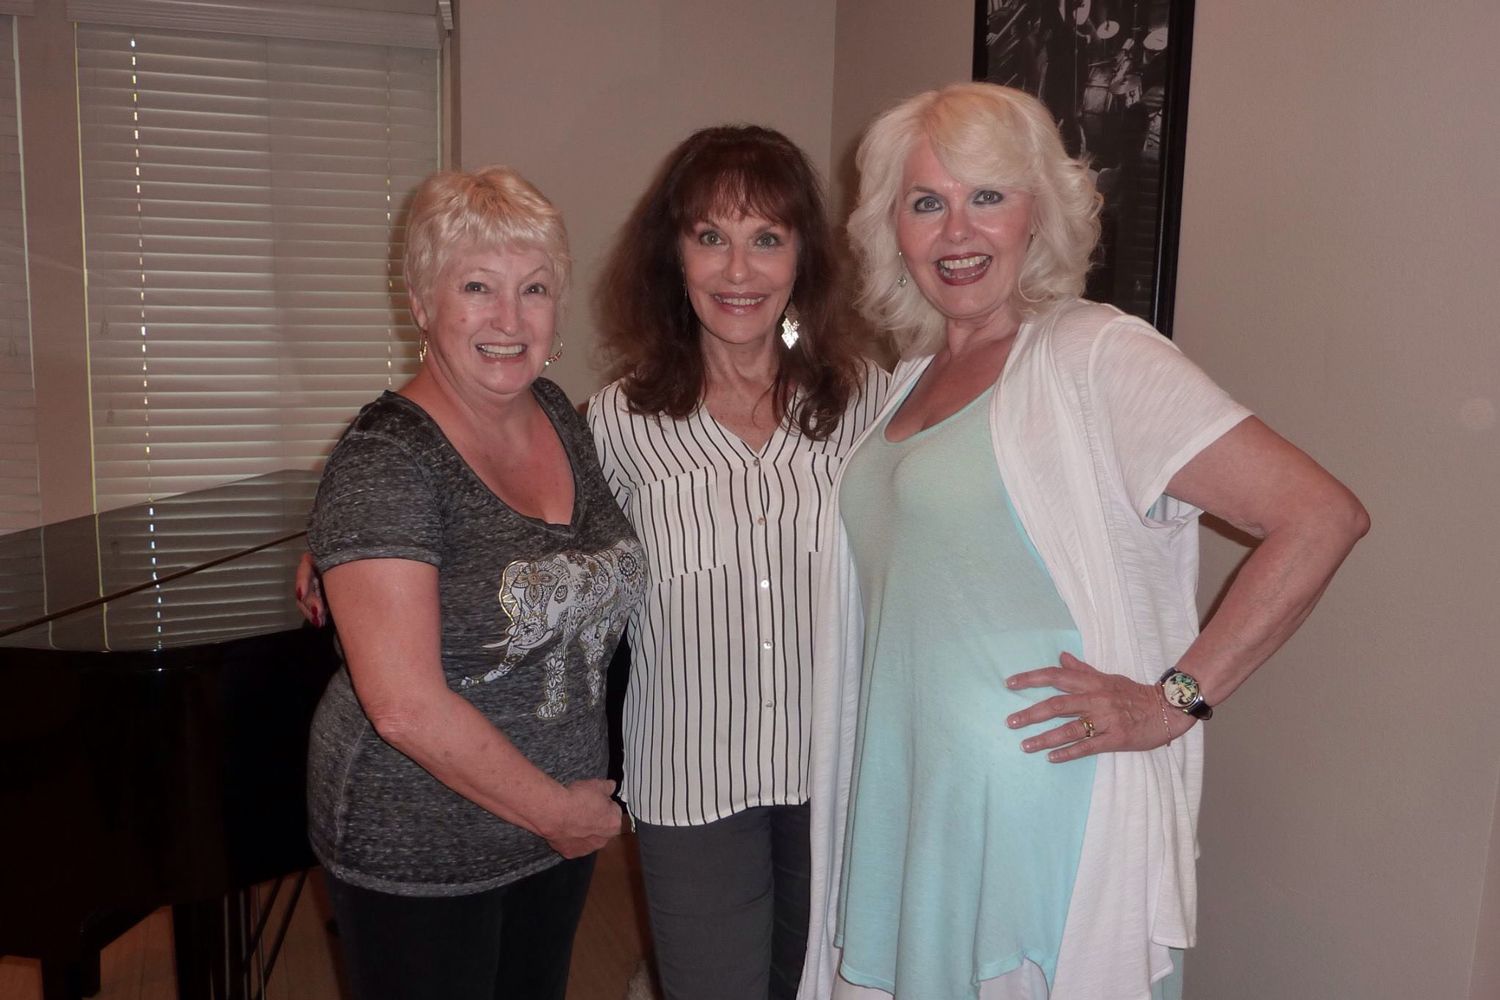 """Tanya Lemoni George  """"Here is a photo of one of Elvis' costar Tanya Lemoni George (centre); she was the belly dancer in the '68 Special with my BFF"""" - Audrey"""